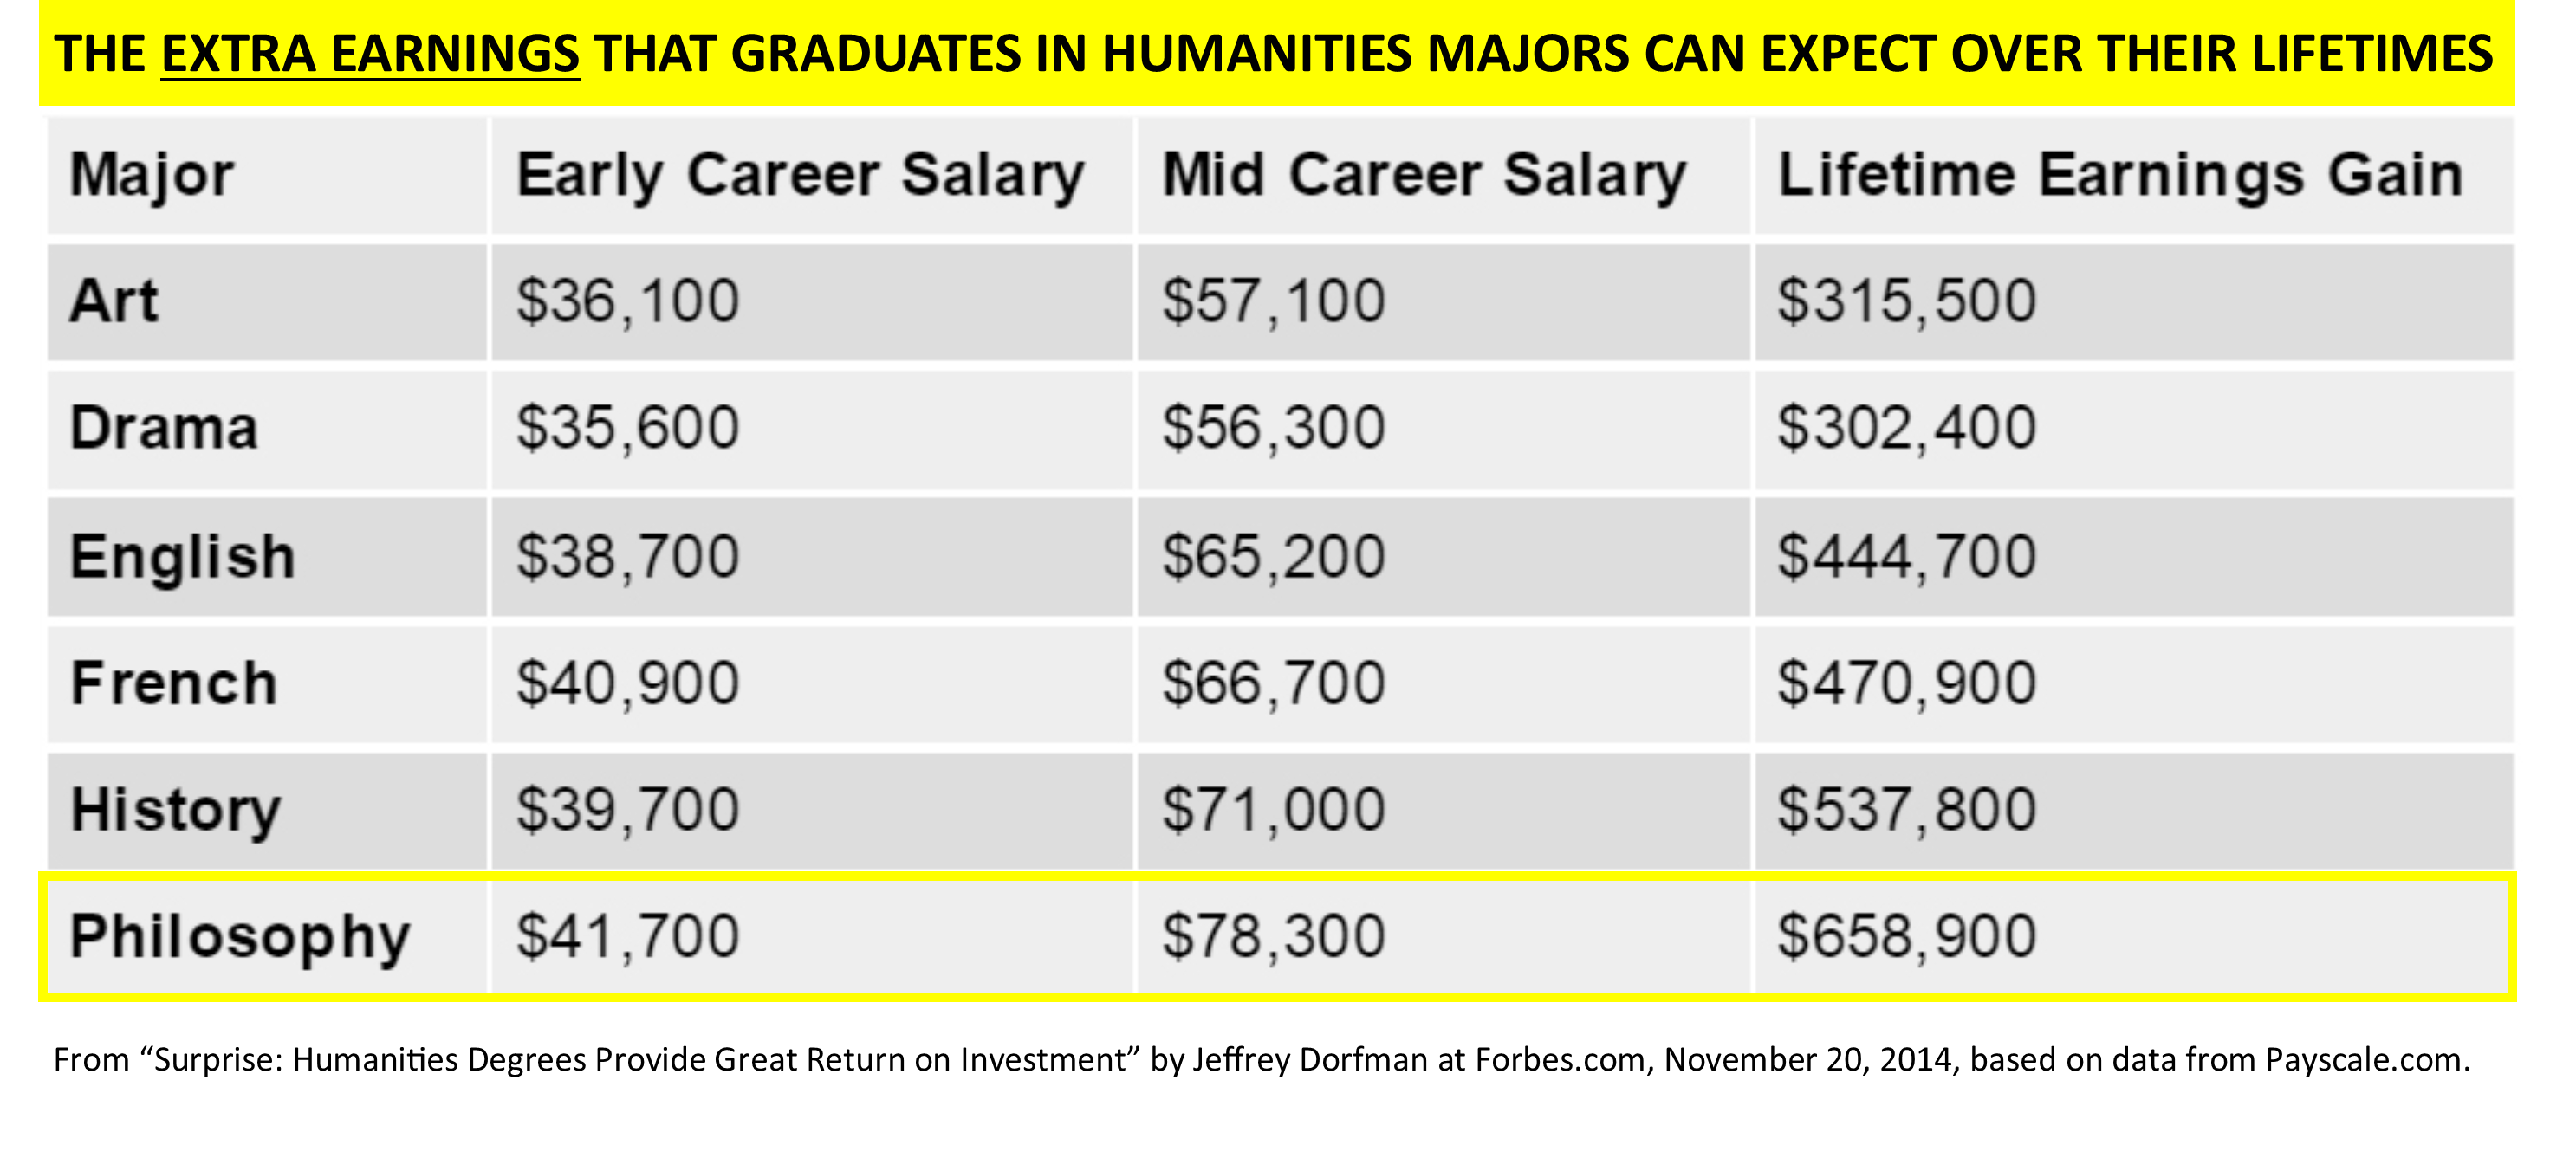 Table showing the extra earnings that graduates in humanities majors can expect over their lifetimes. Philosophy: 41,700 early career salary, 78,300 mid-career salary, 658,900 lifetime earnings gain.  All rank higher than other majors art, drama, English, French, history.